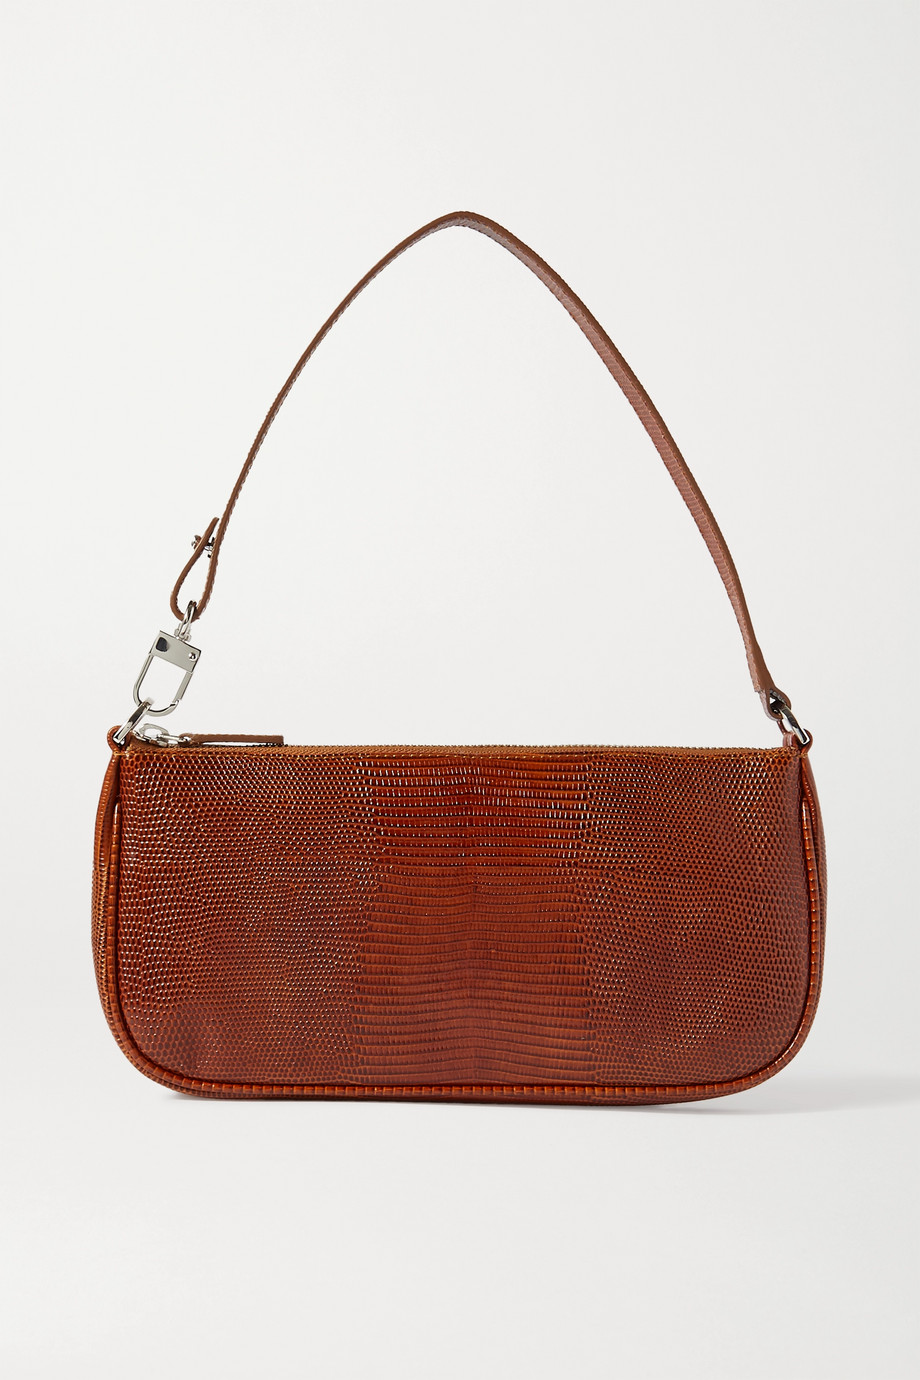 BY FAR Rachel lizard-effect leather shoulder bag